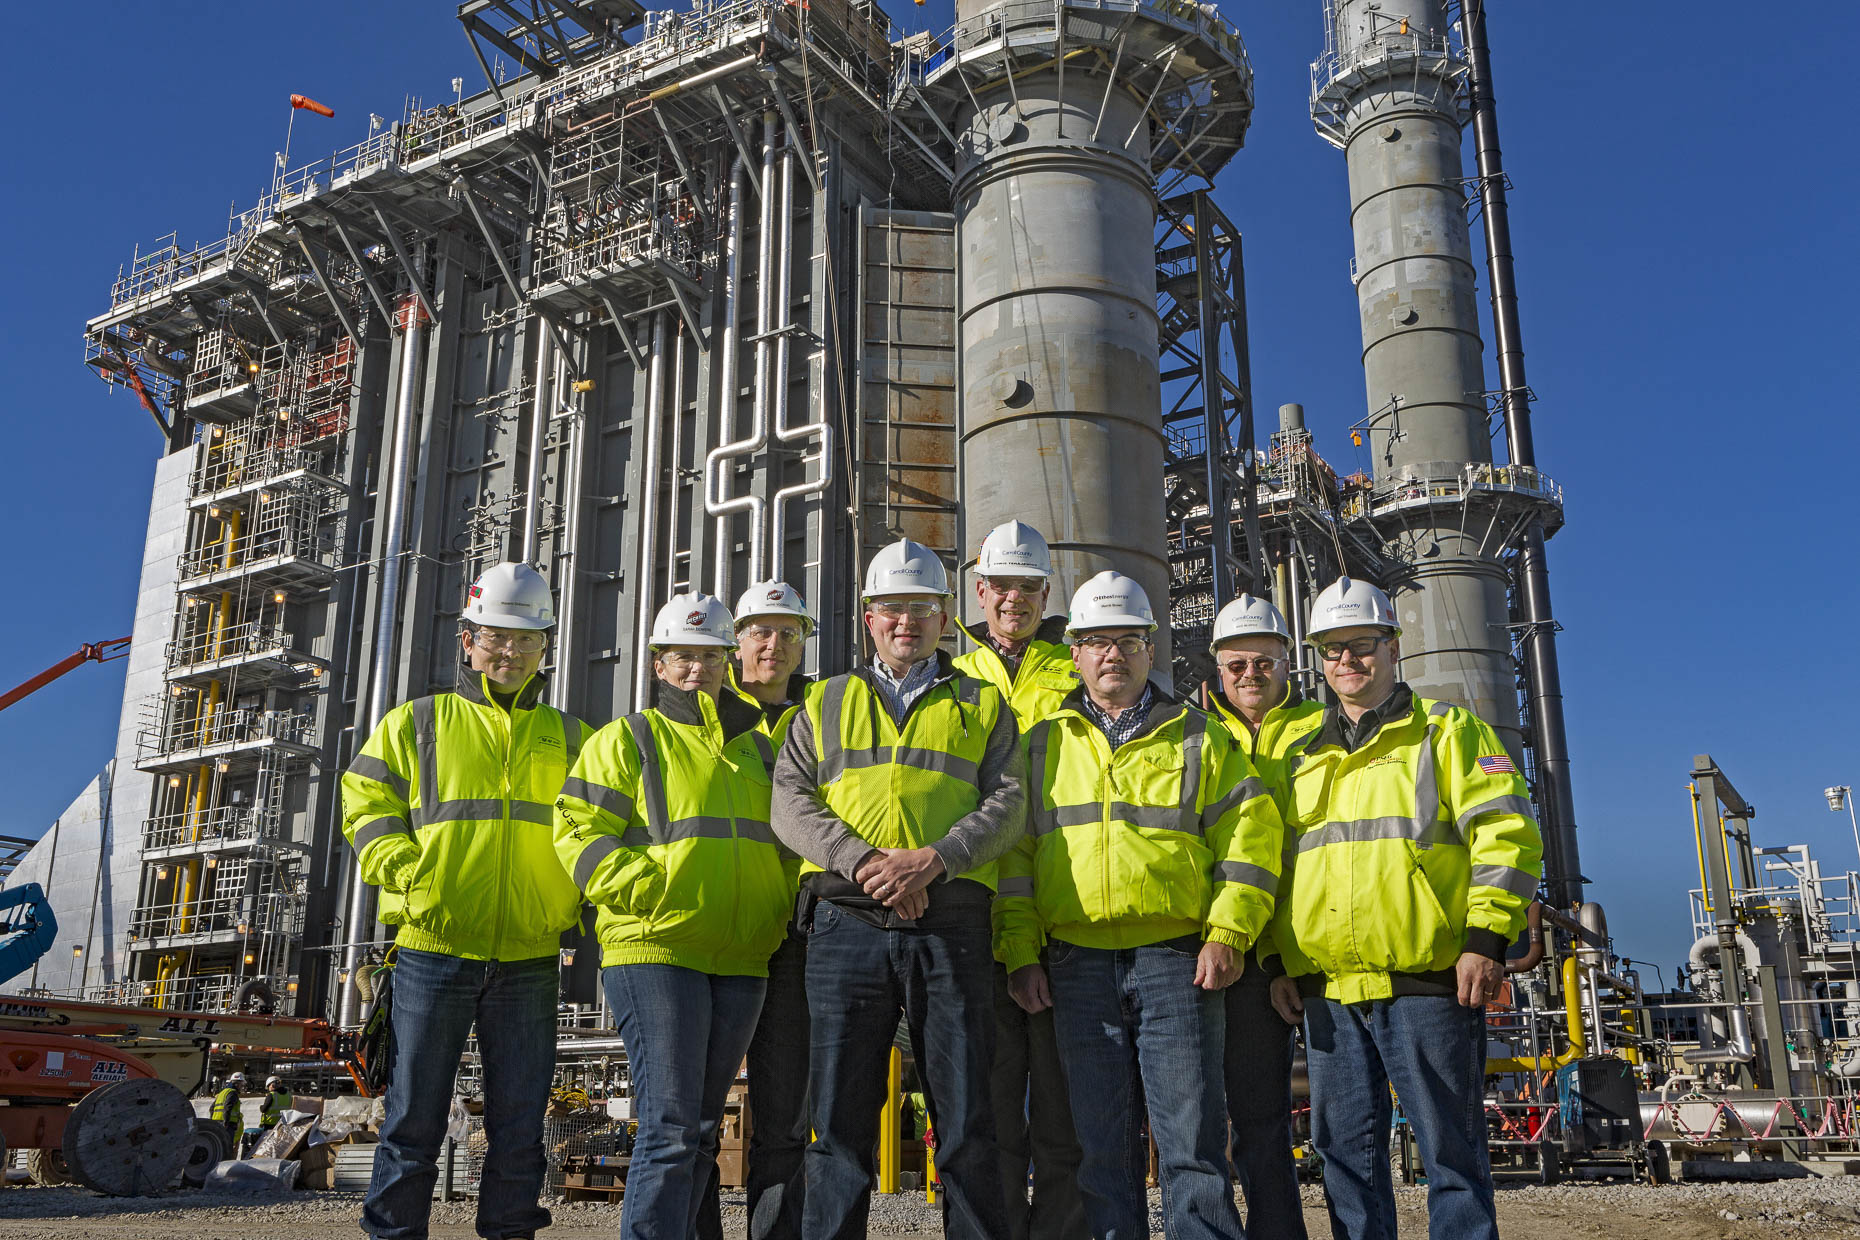 Advanced Power Owners at the Carroll County Energy Plant photographed by Lauren K Davis